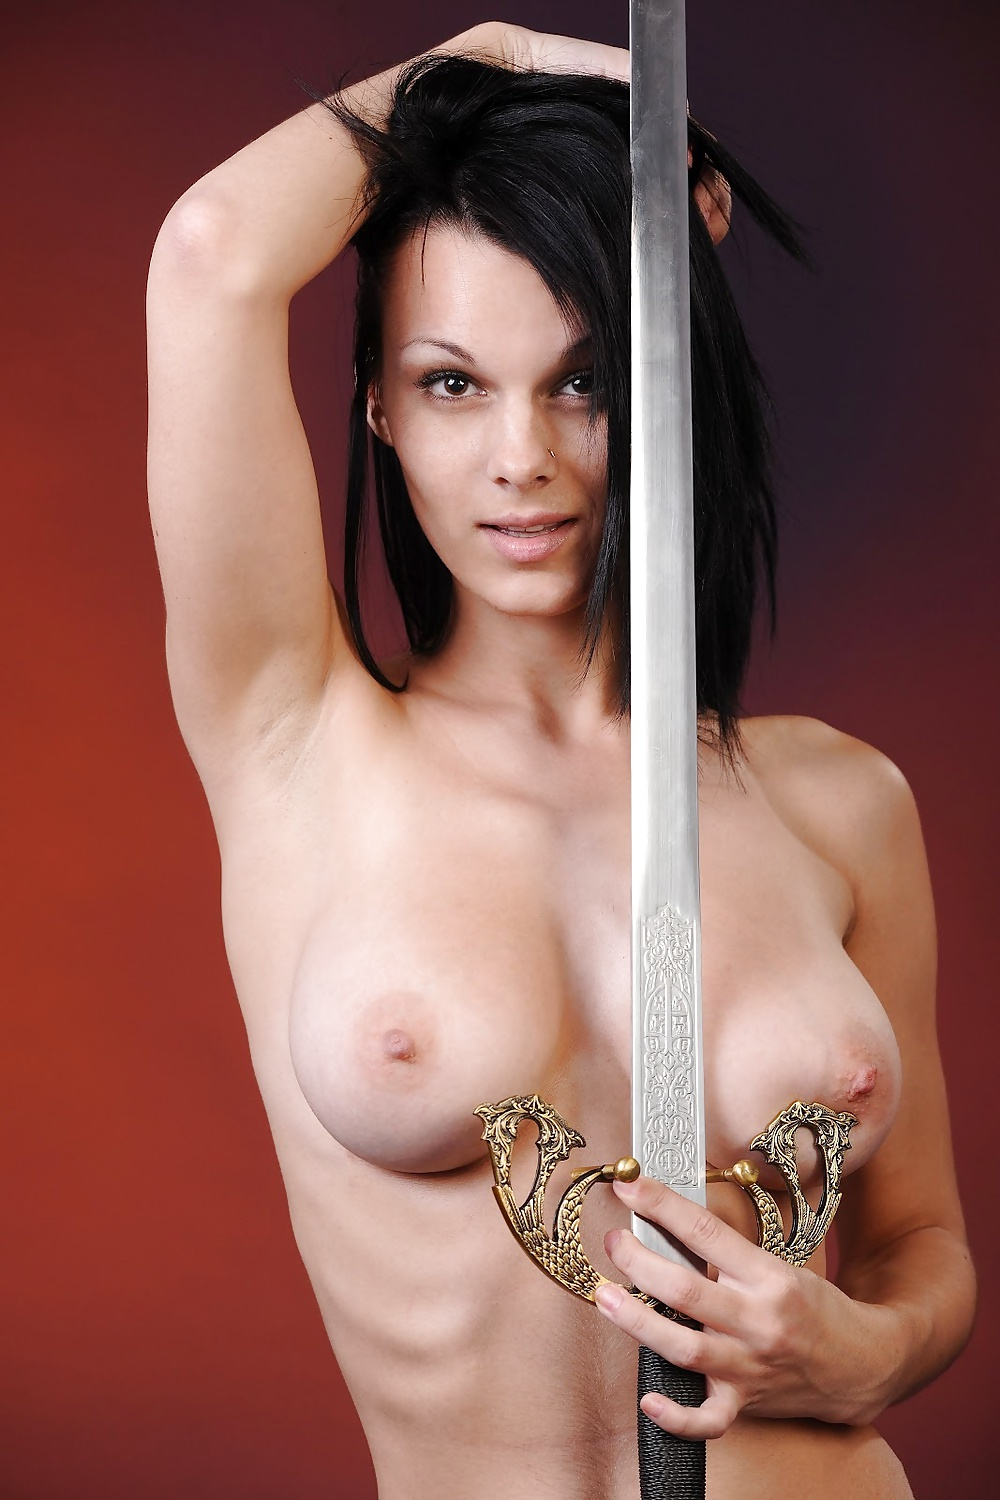 Girl with sword nude 7